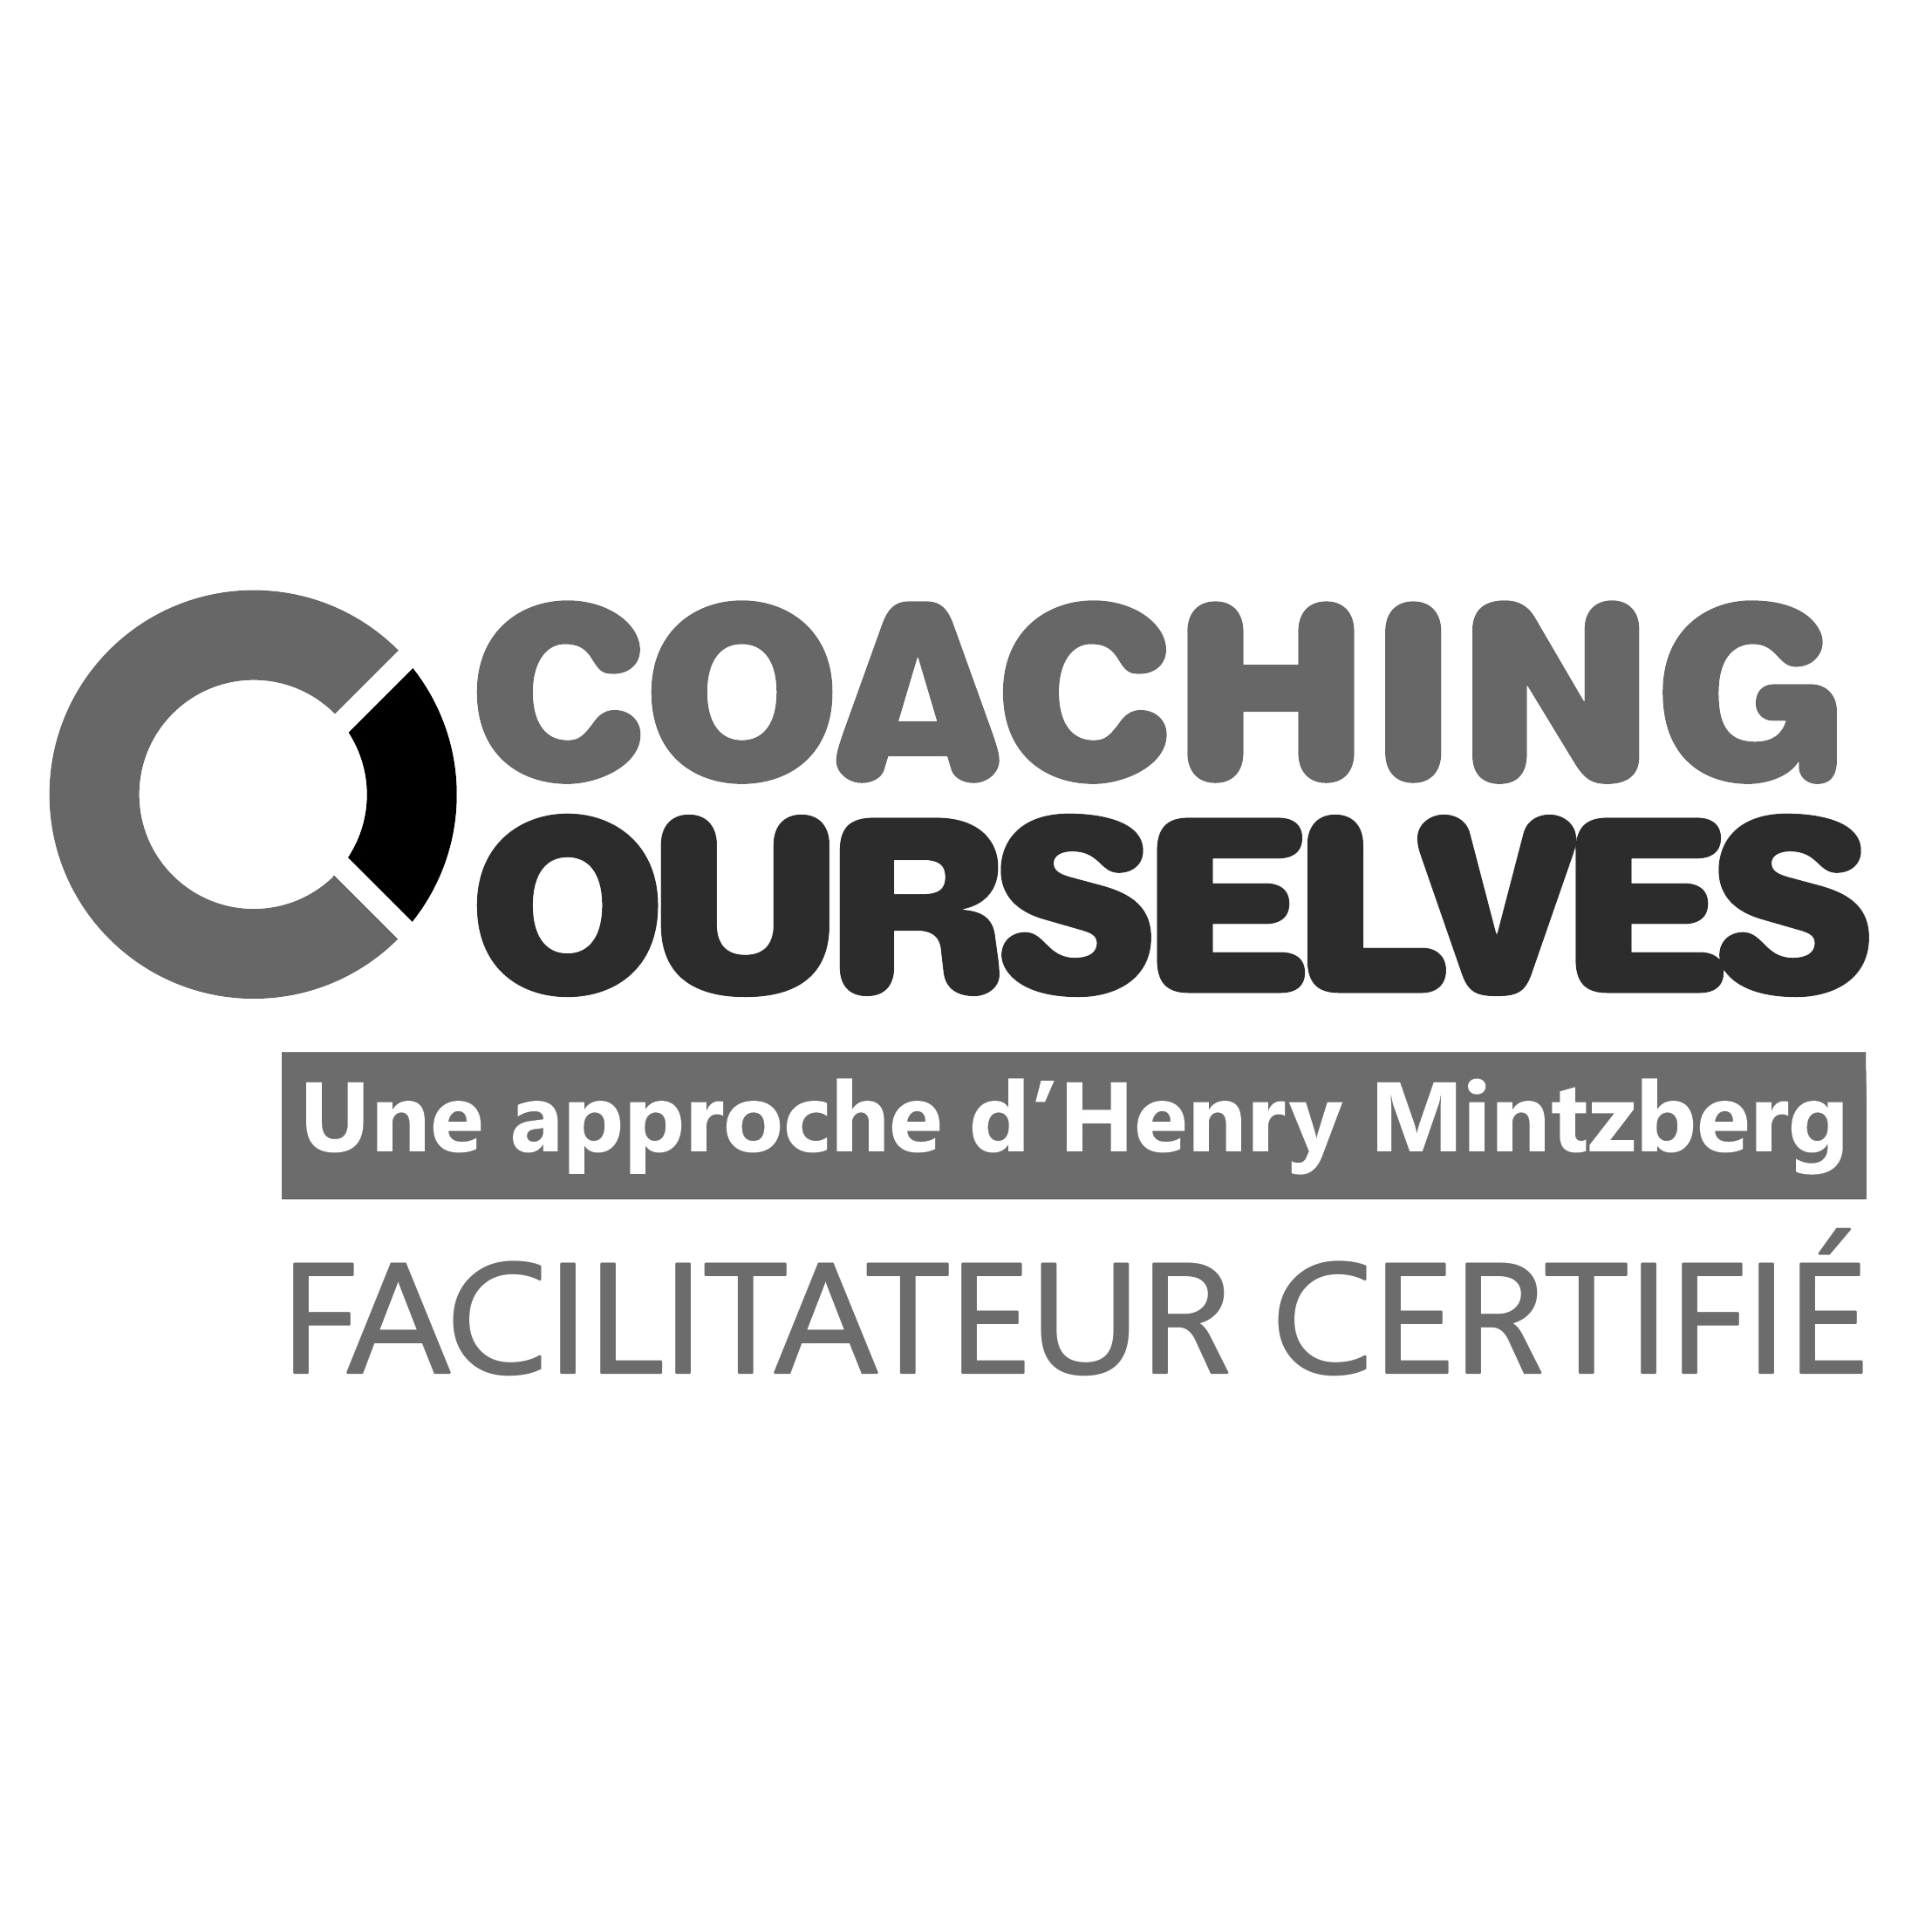 CoachingOurselves-certifie-canada_2.png